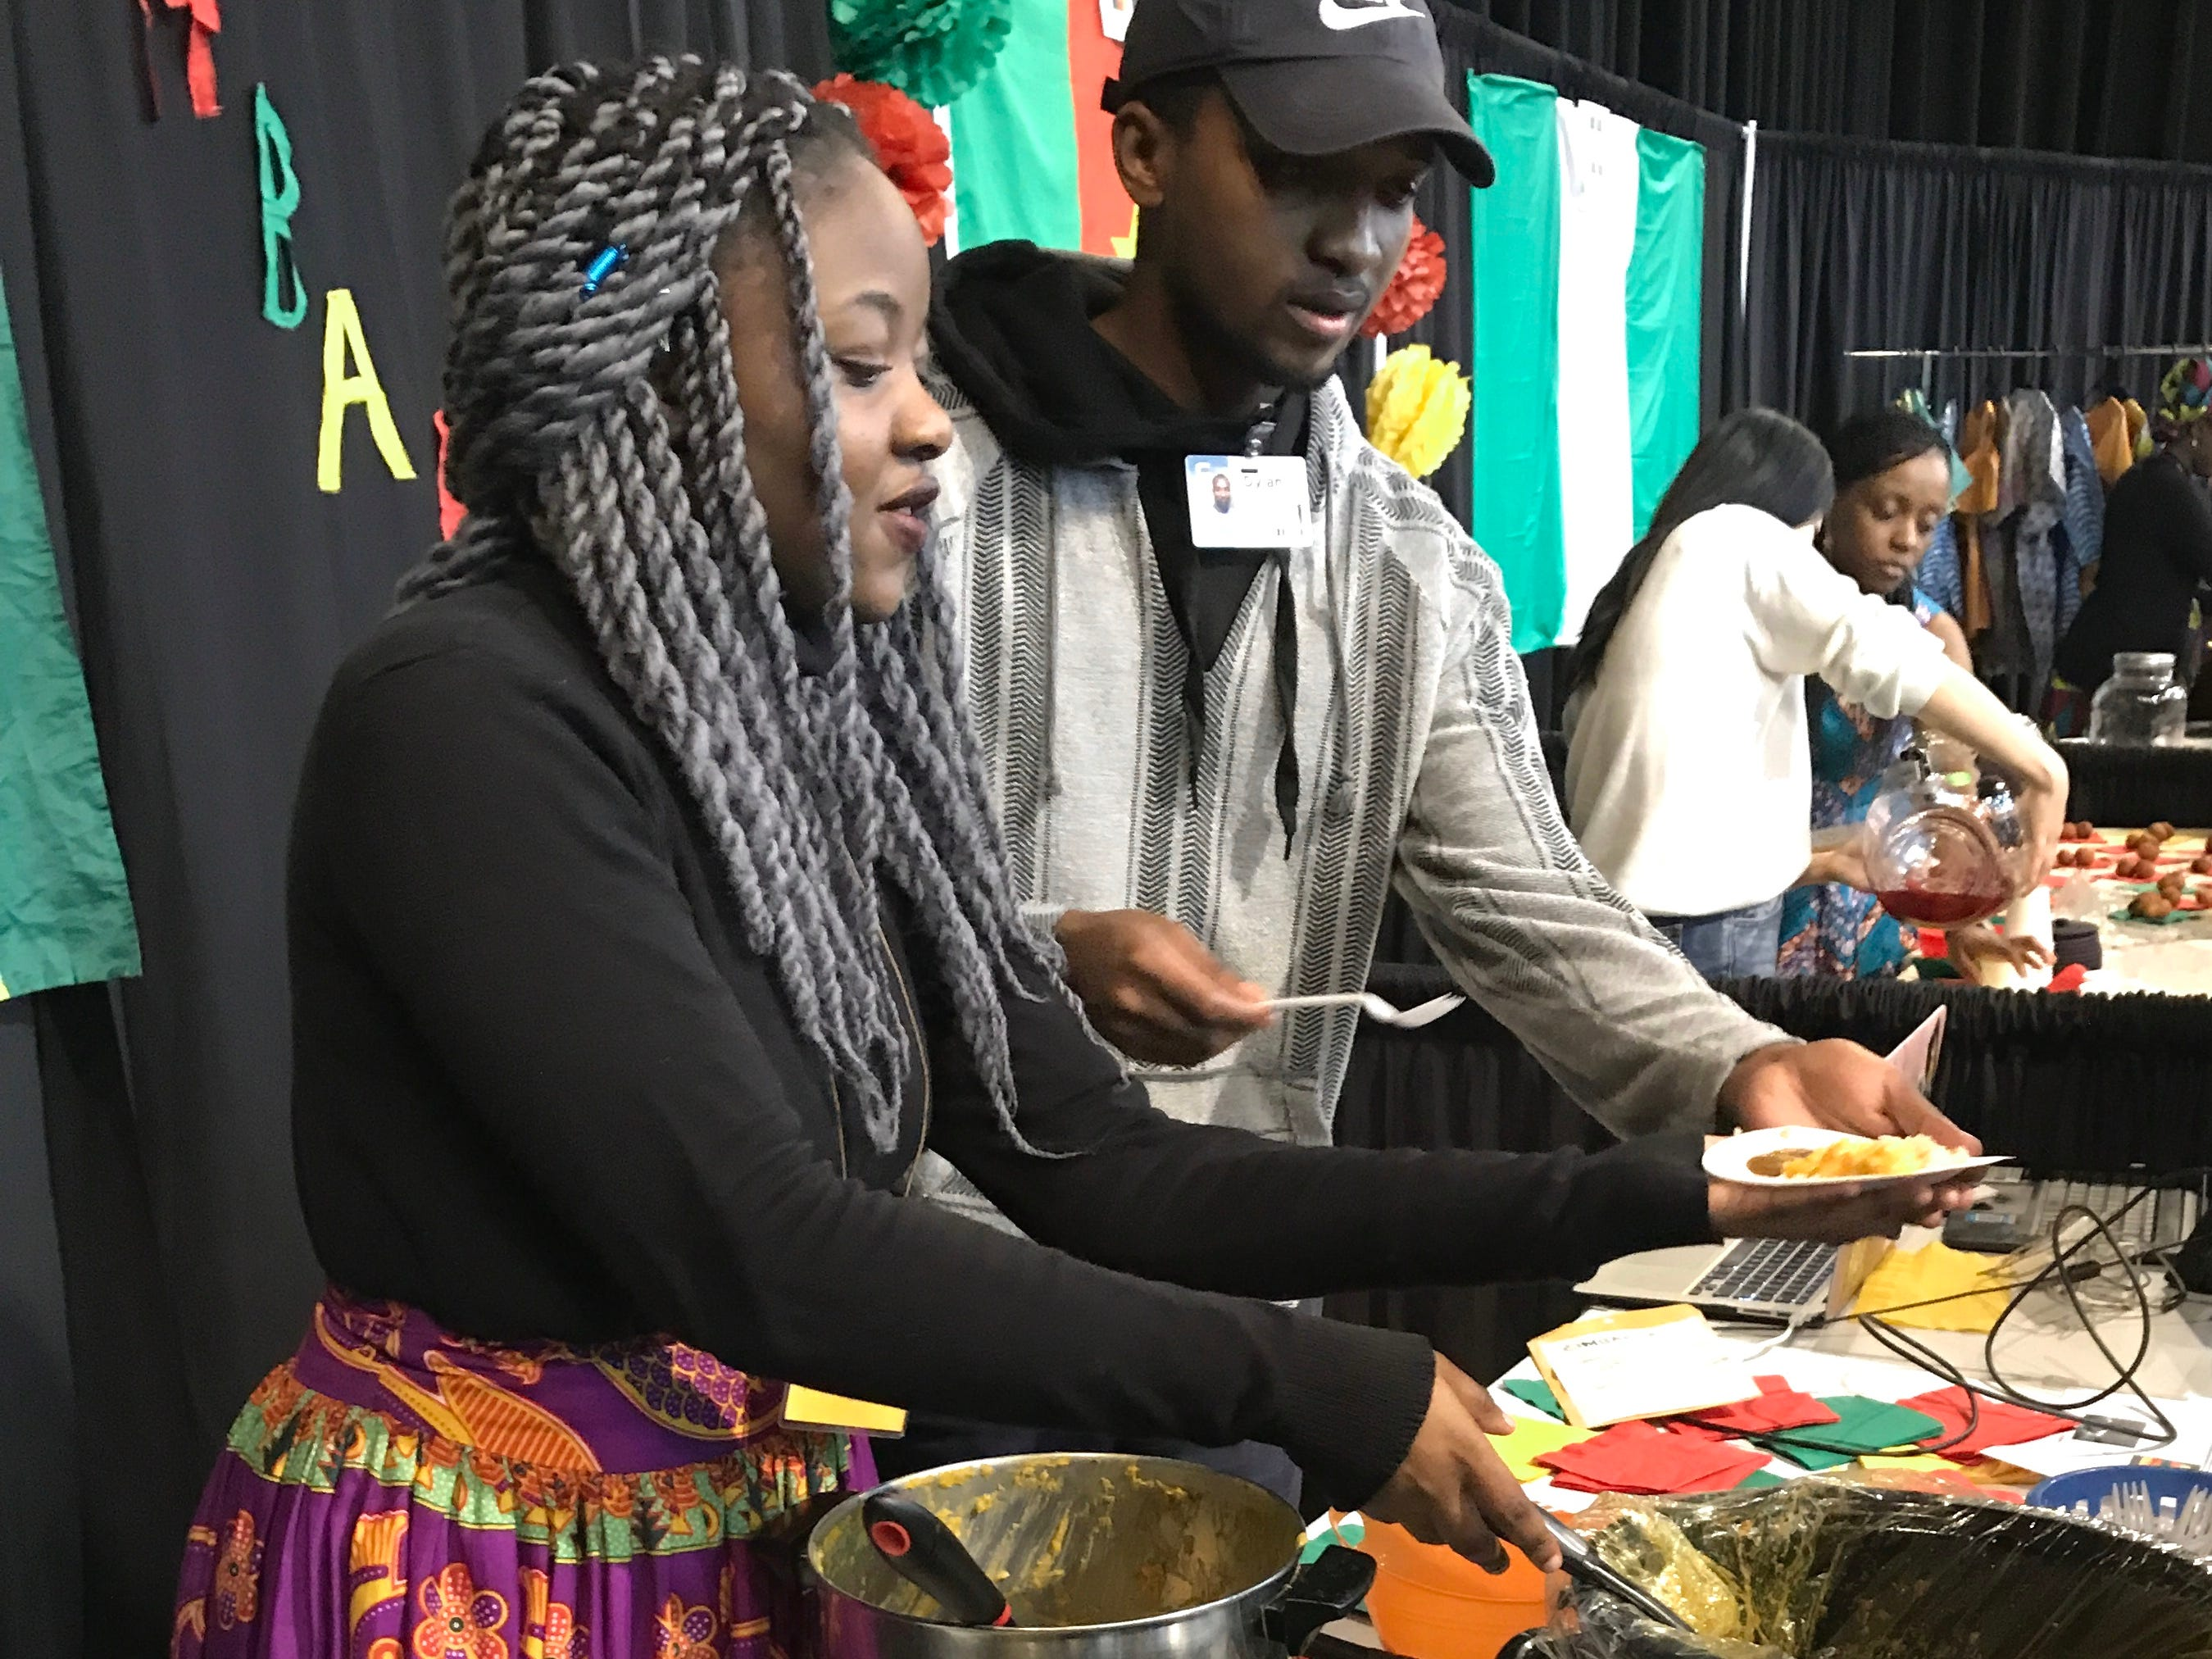 Ruzivo Chisaka, left, and Dylan Mafukidze serve food samples representing Zimbabwe during the annual Festival of Cultures hosted by Bethel Church in the Redding Civic Auditorium on Feb. 9, 2019. Bethel School of Supernatural Ministry students from more than 50 countries participated.